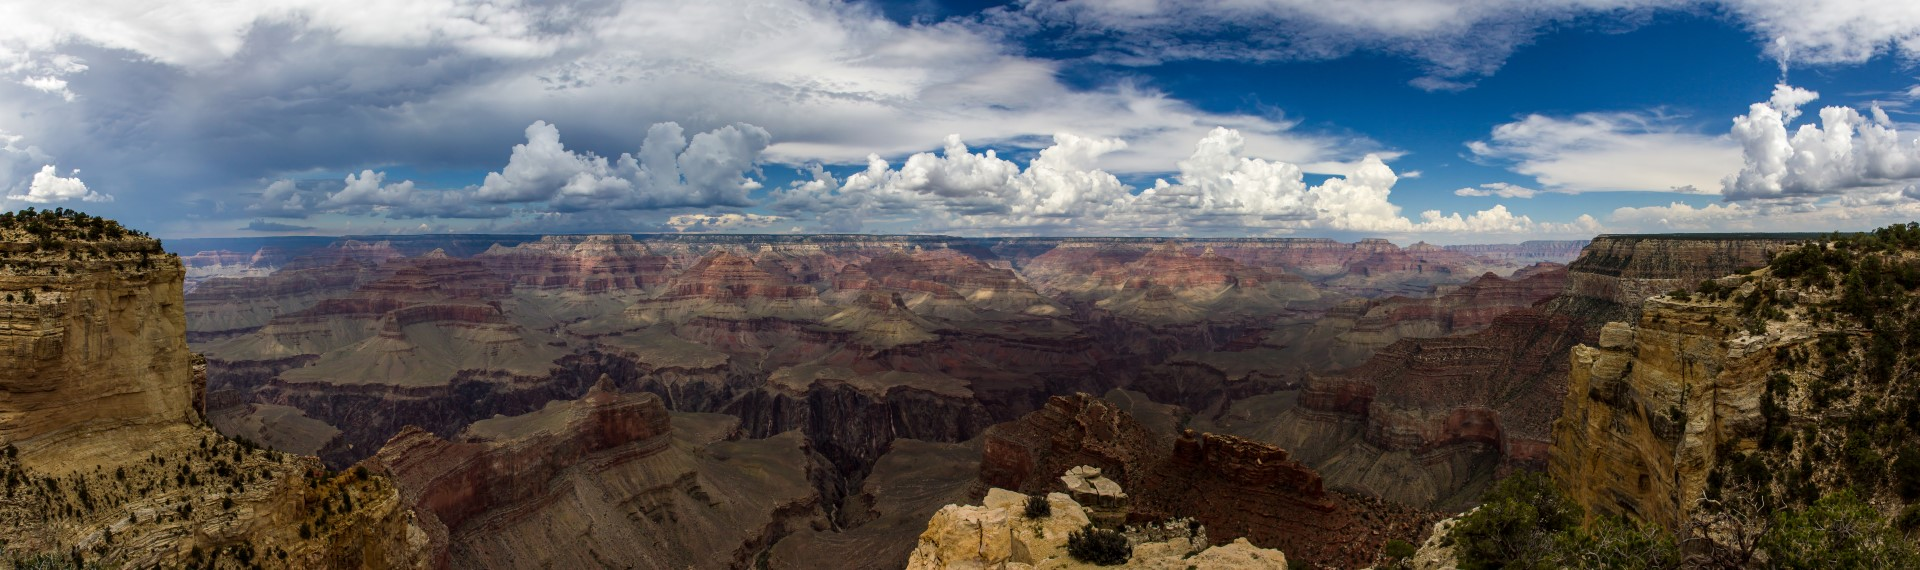 South Rim Helicopter Tour Canyon